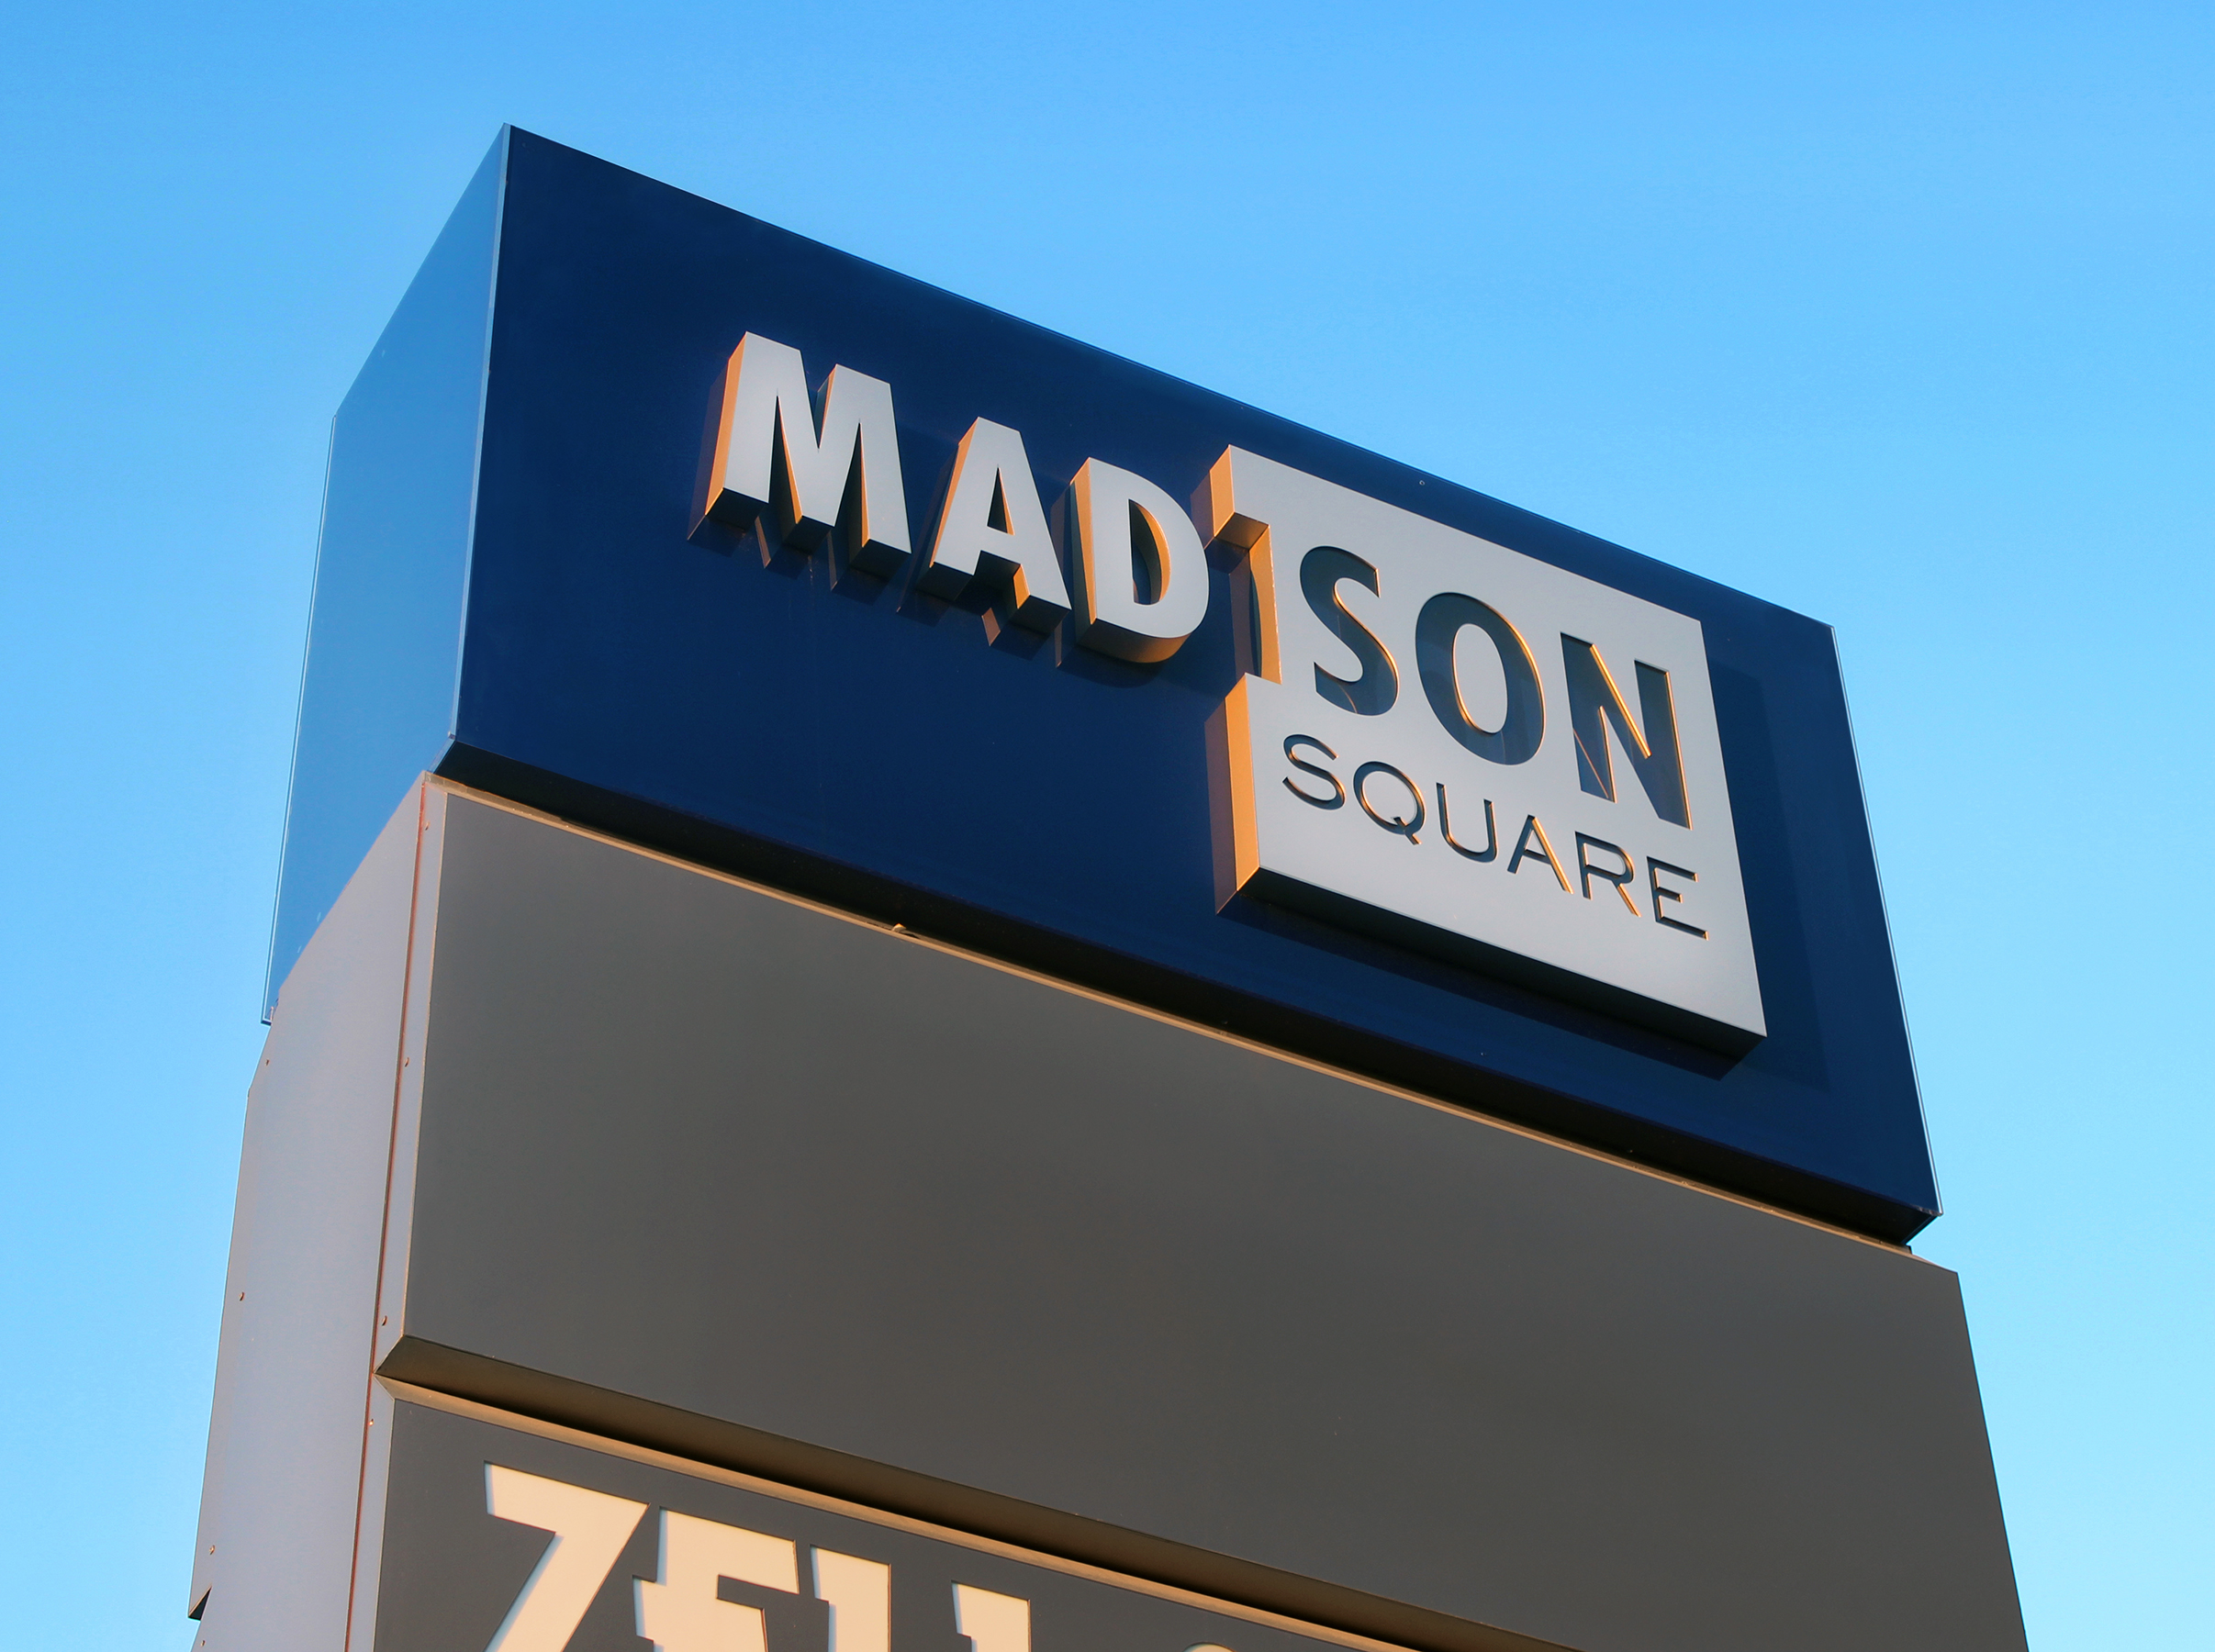 The sign's branding element is constructed of blue acrylic and aluminum fabricated letters/logo.